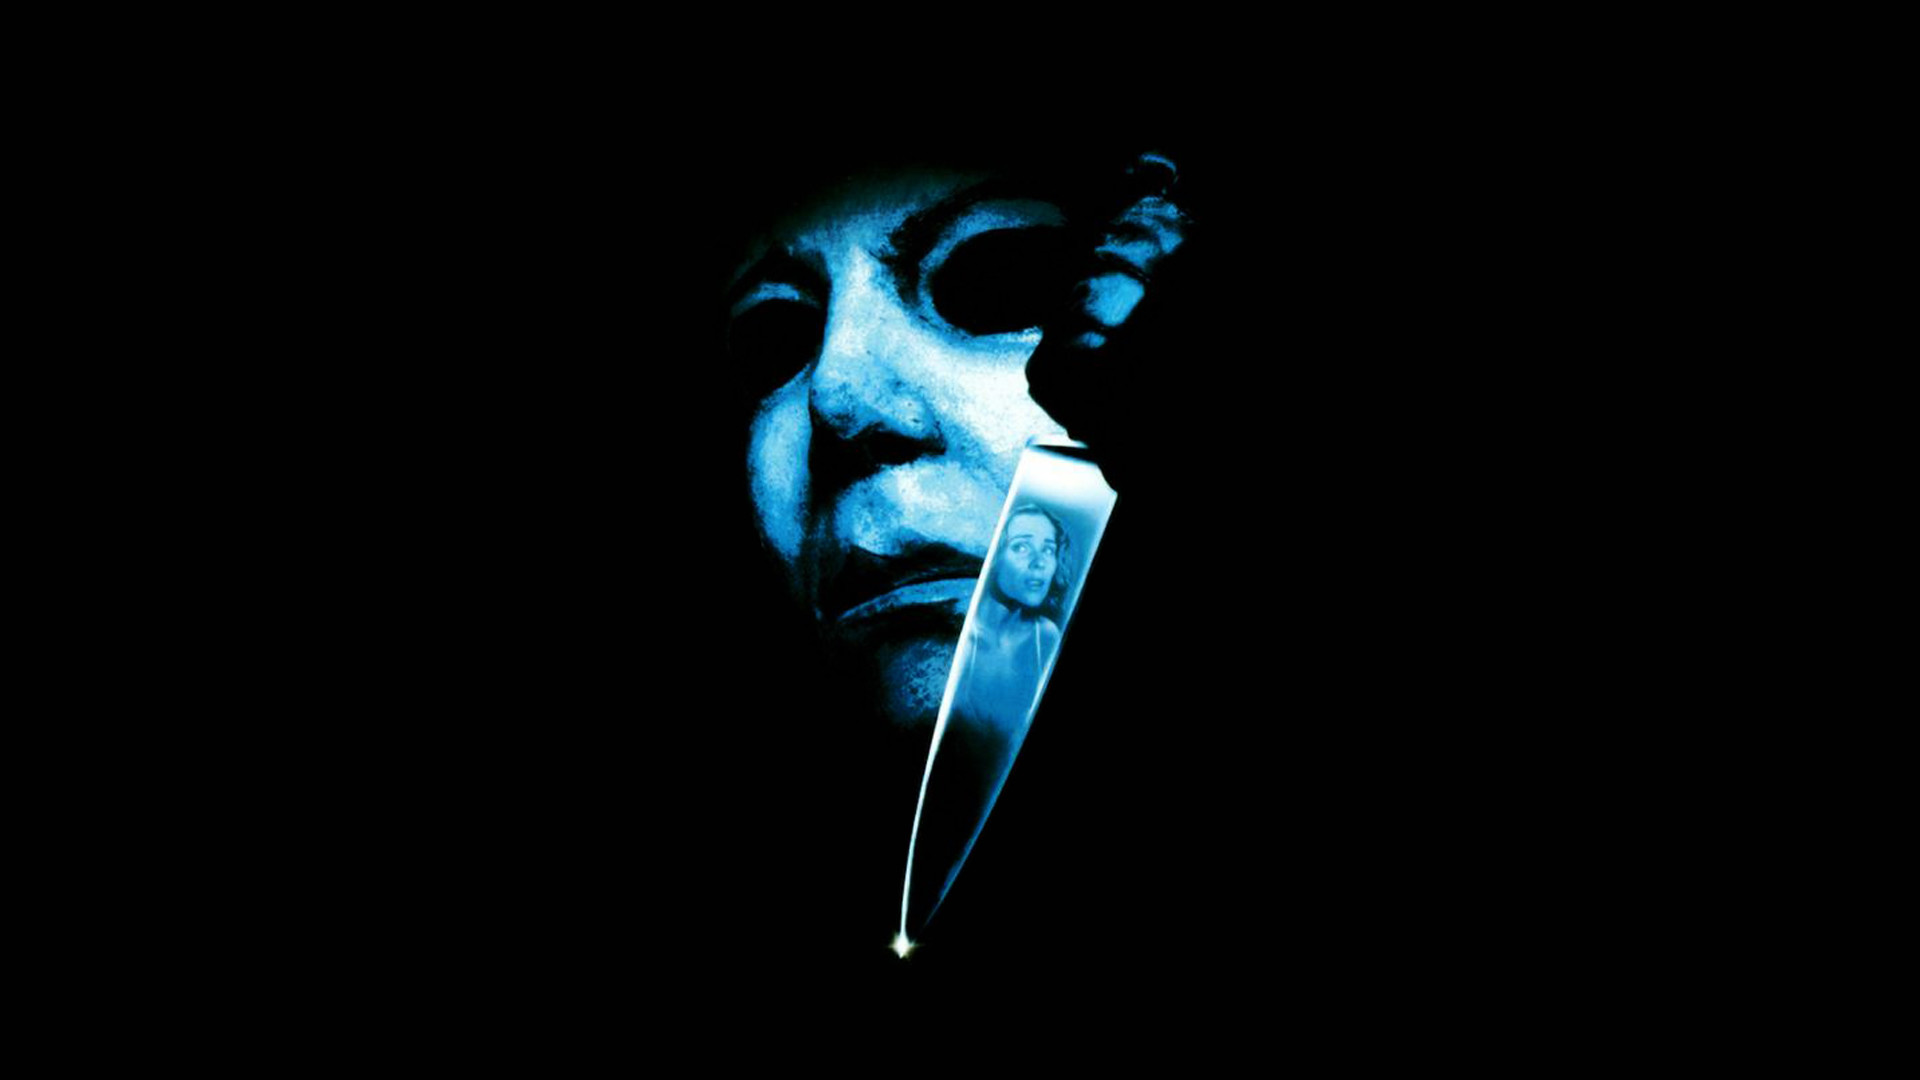 Download Horror Movie Wallpaper Hd Backgrounds Download